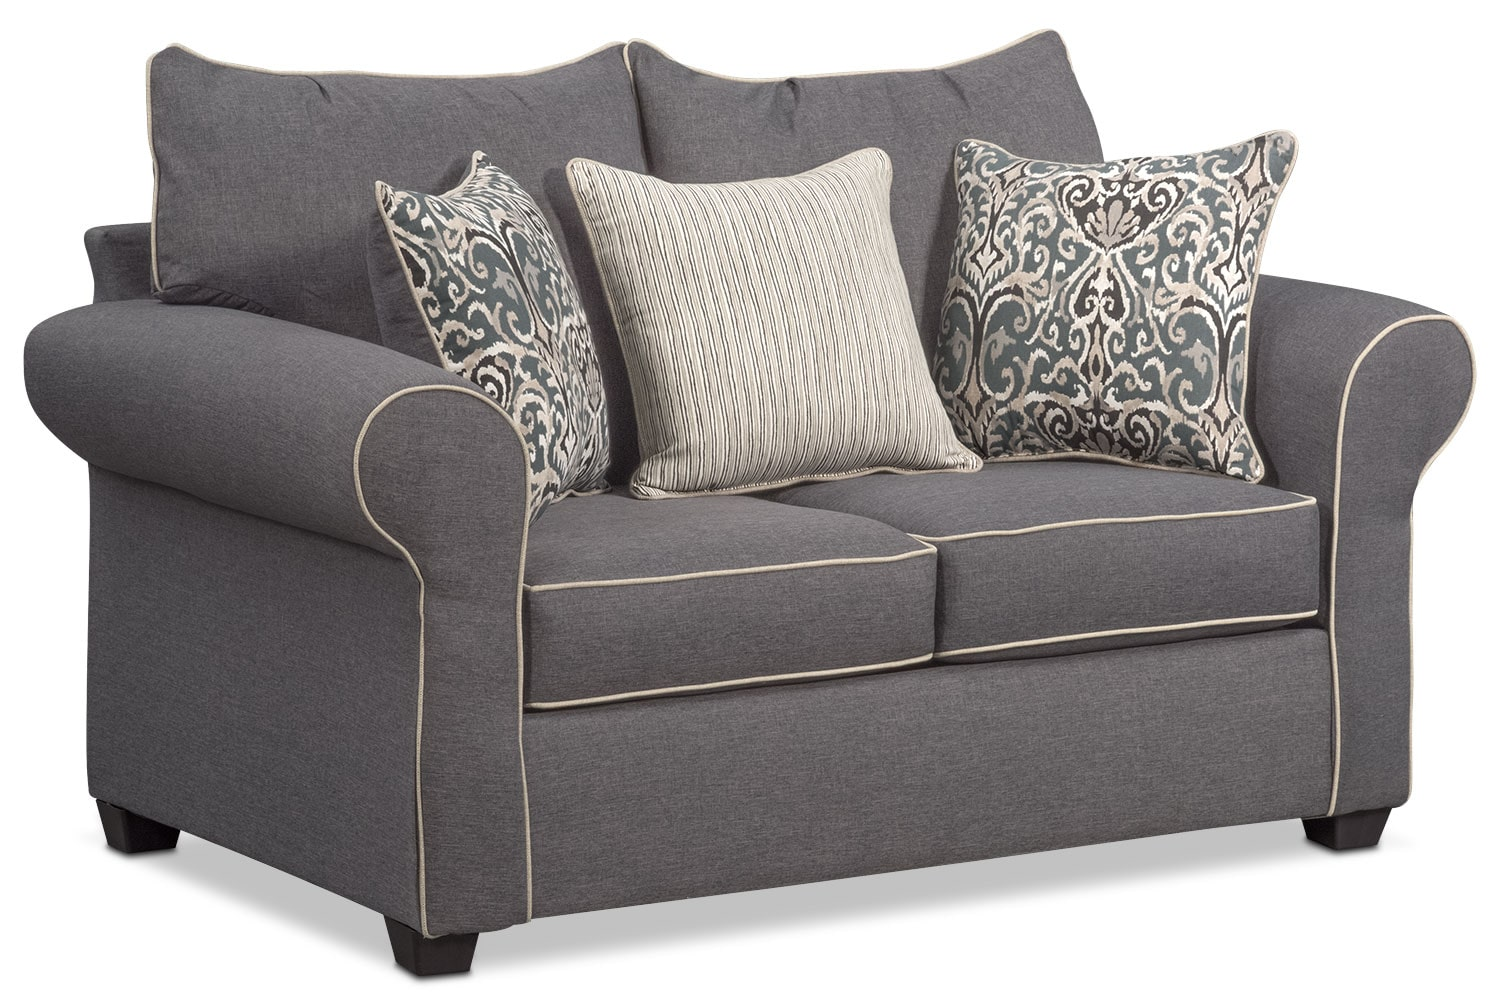 Carla Queen Memory Foam Sleeper Sofa And Loveseat Set Gray By Factory Outlet